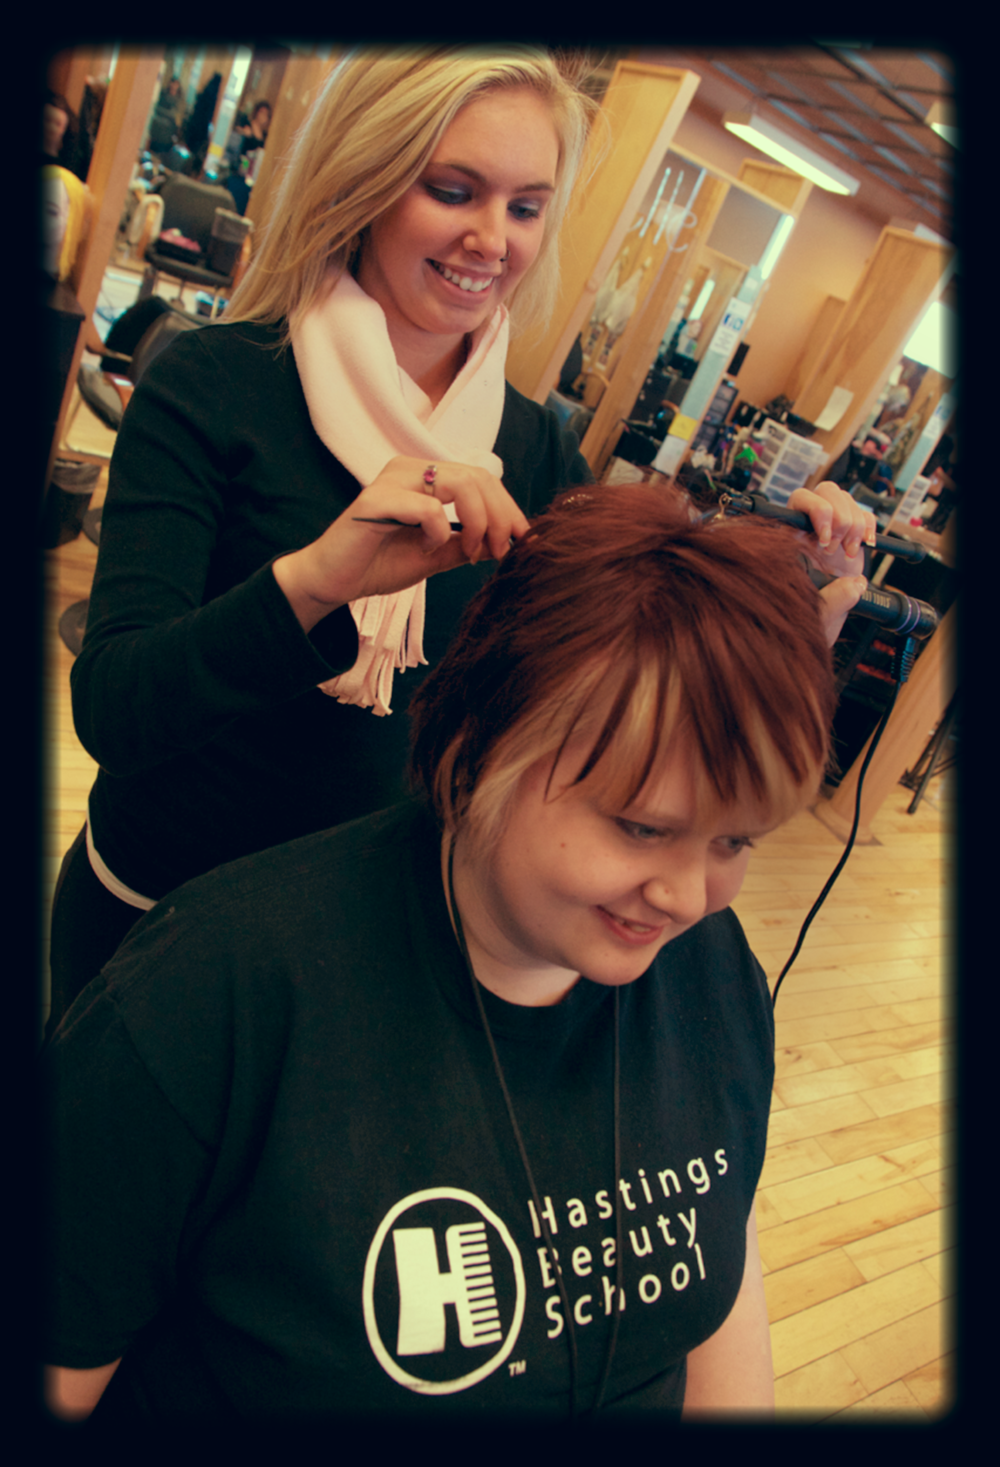 SELECT   to learn more about Hastings Beauty School.